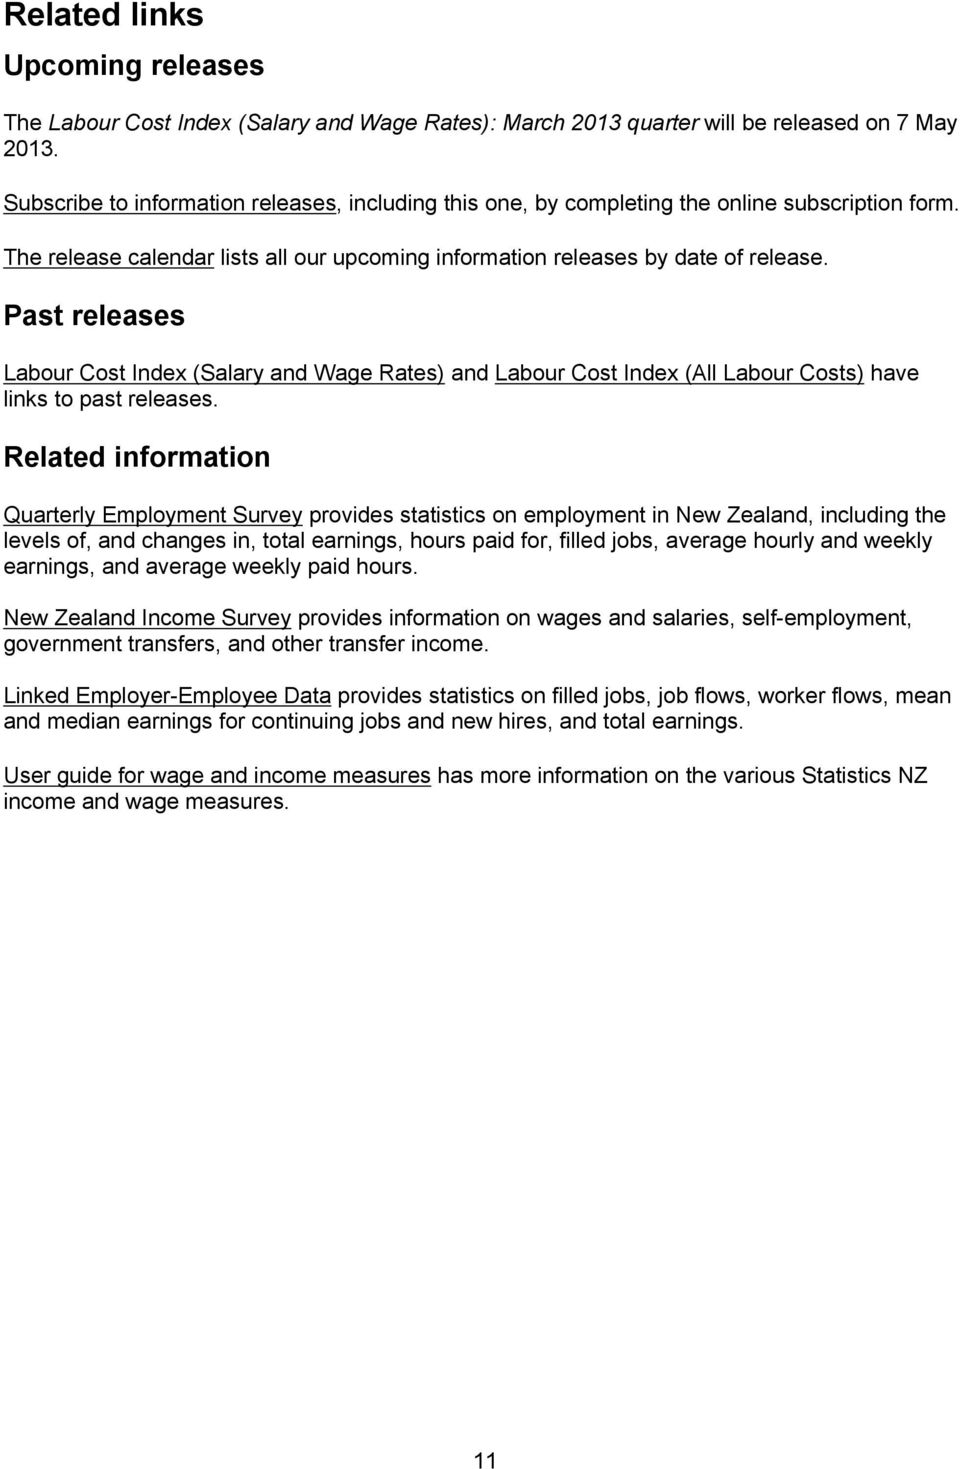 Past releases Labour Cost Index (Salary and Wage Rates) and Labour Cost Index (All Labour Costs) have links to past releases.